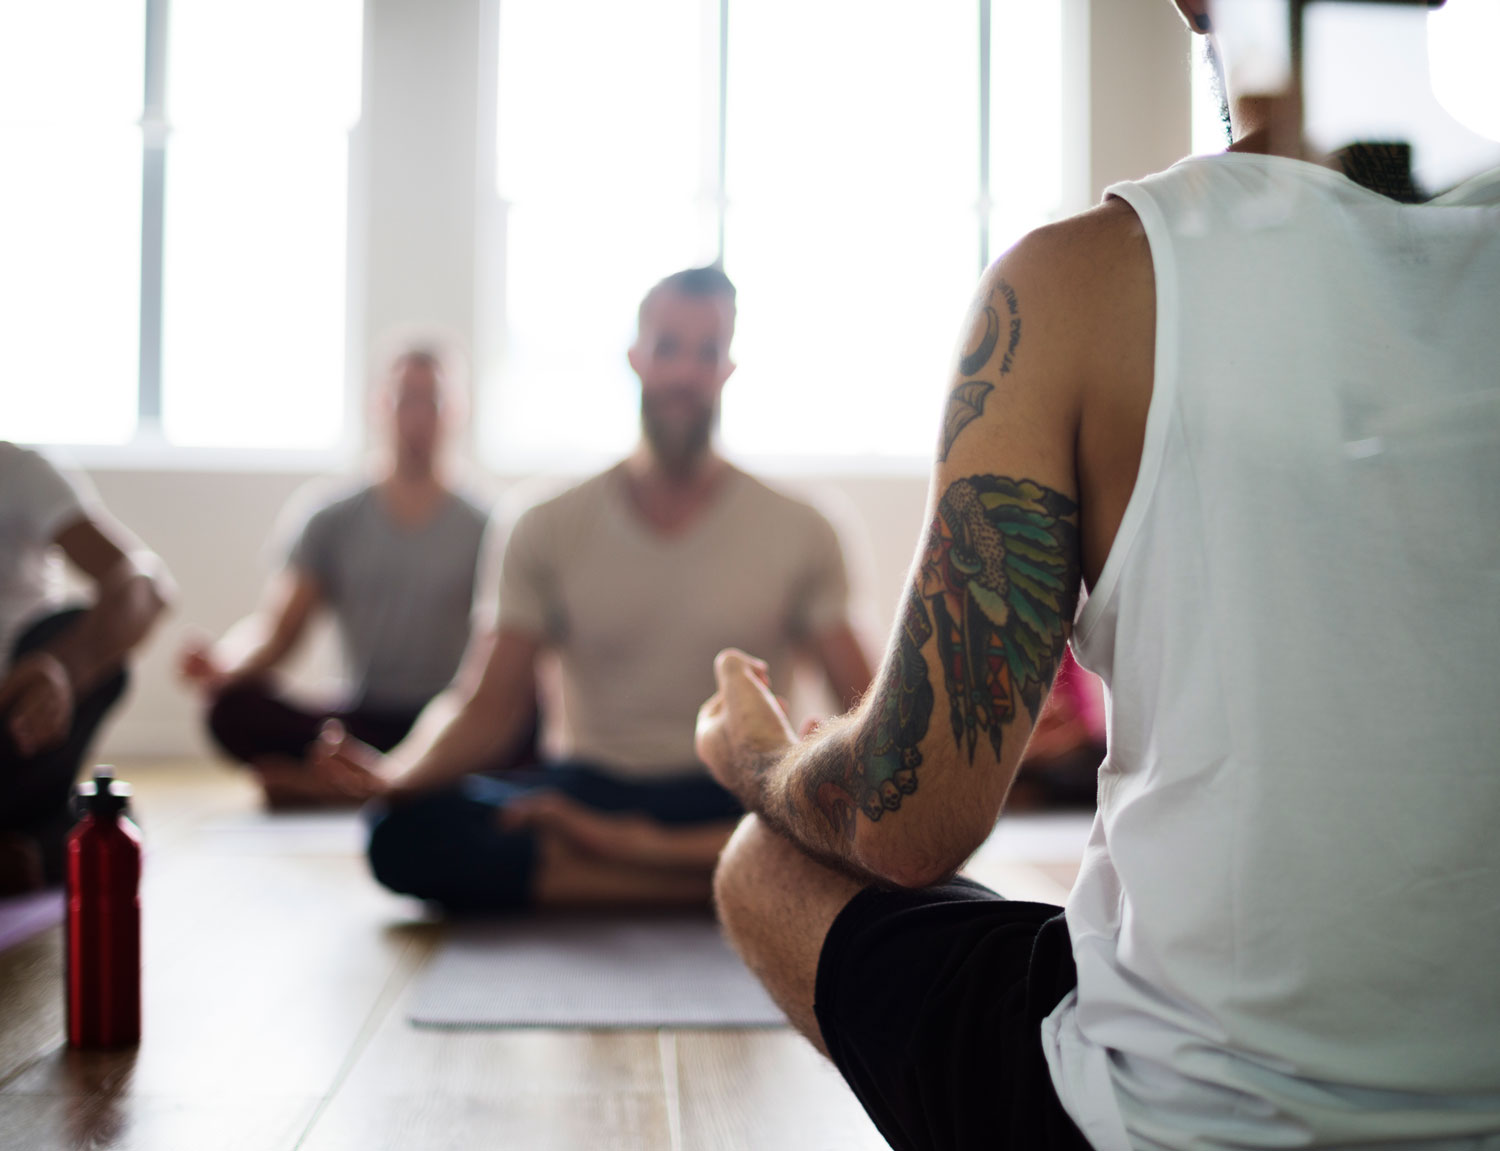 Diversity-People-Exercise-Class-Relax-Concept